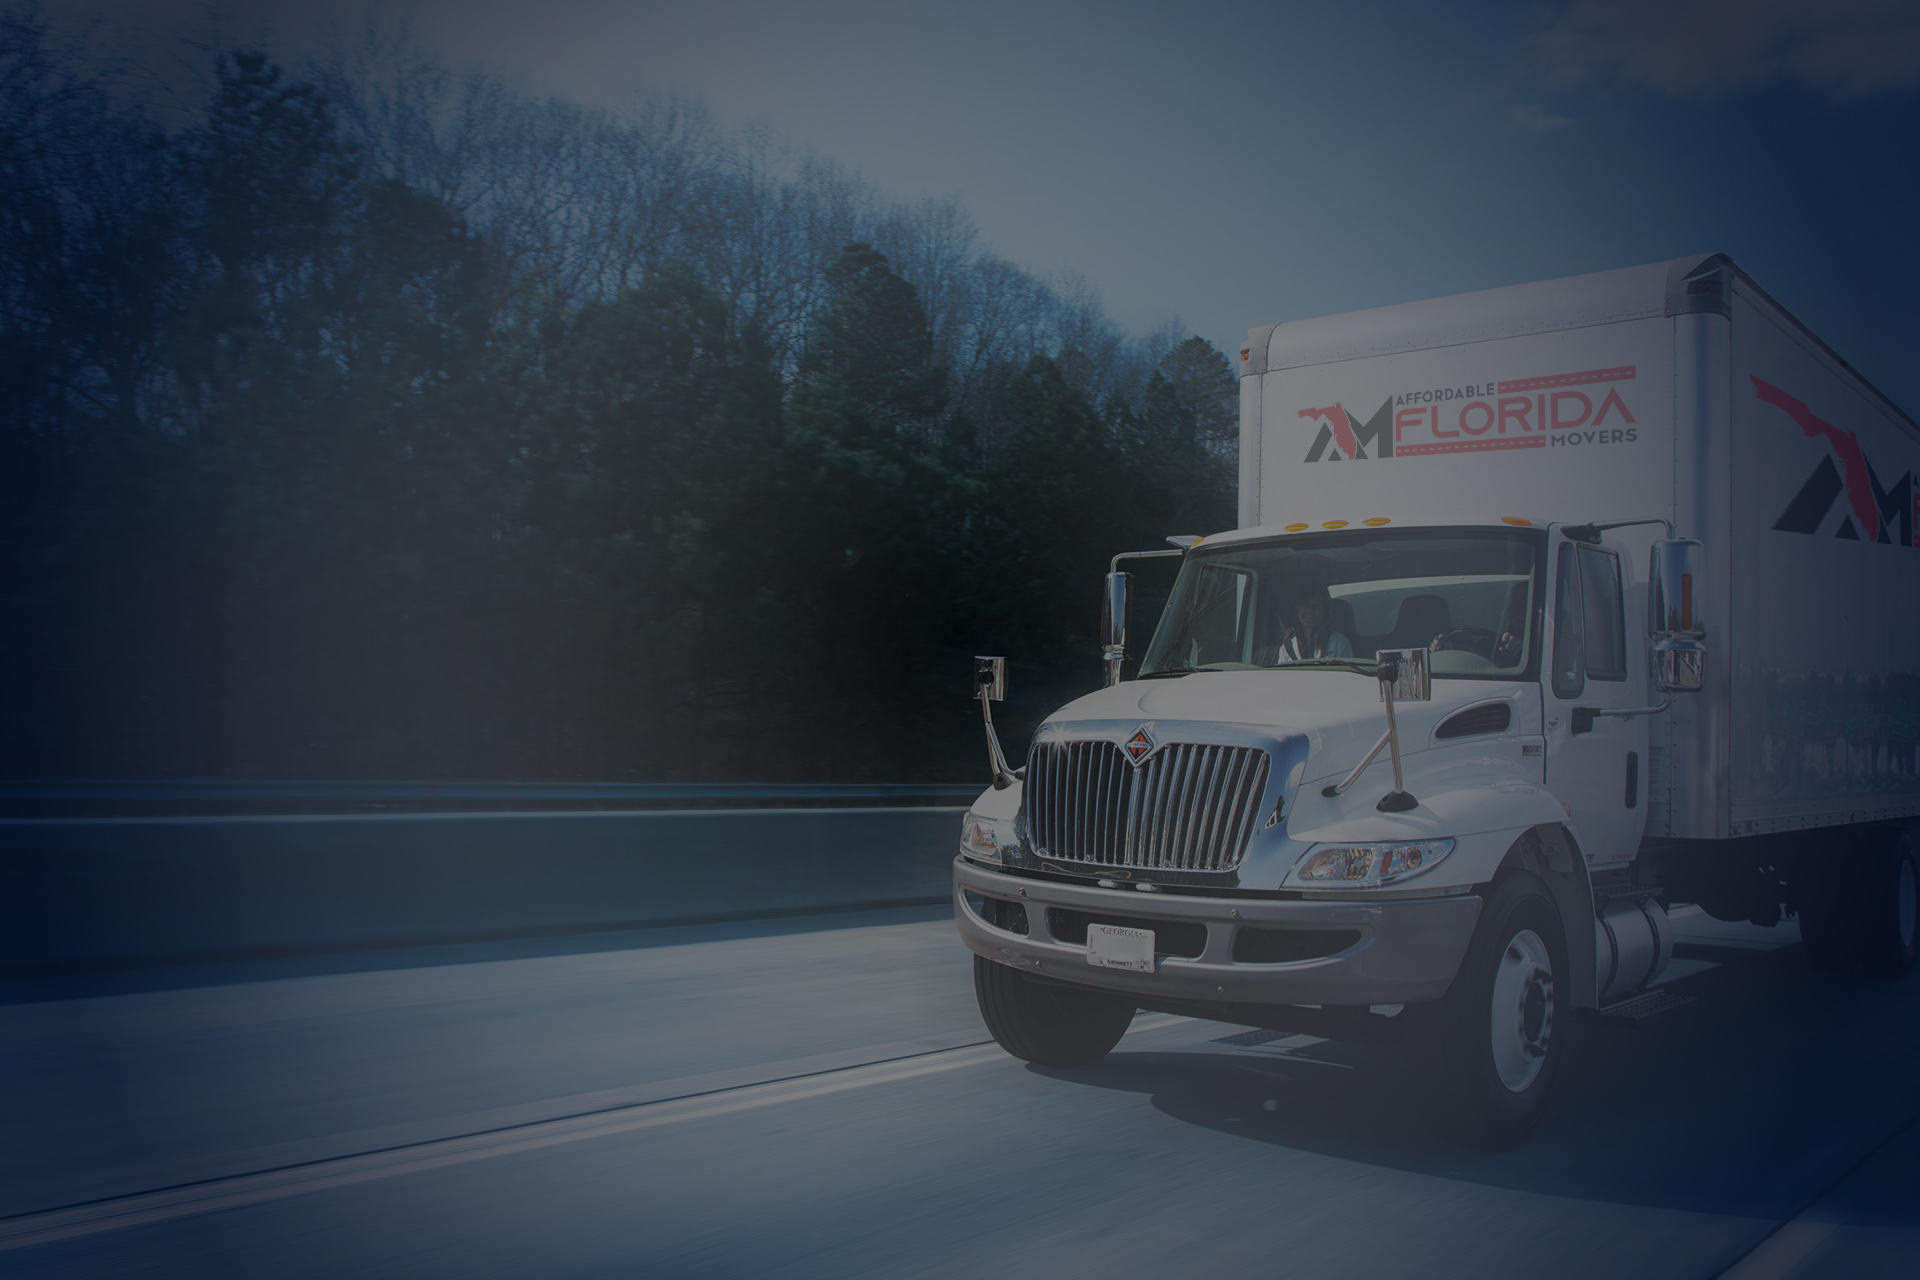 dark image of moving truck from Affordable Florida Movers driving on a highway